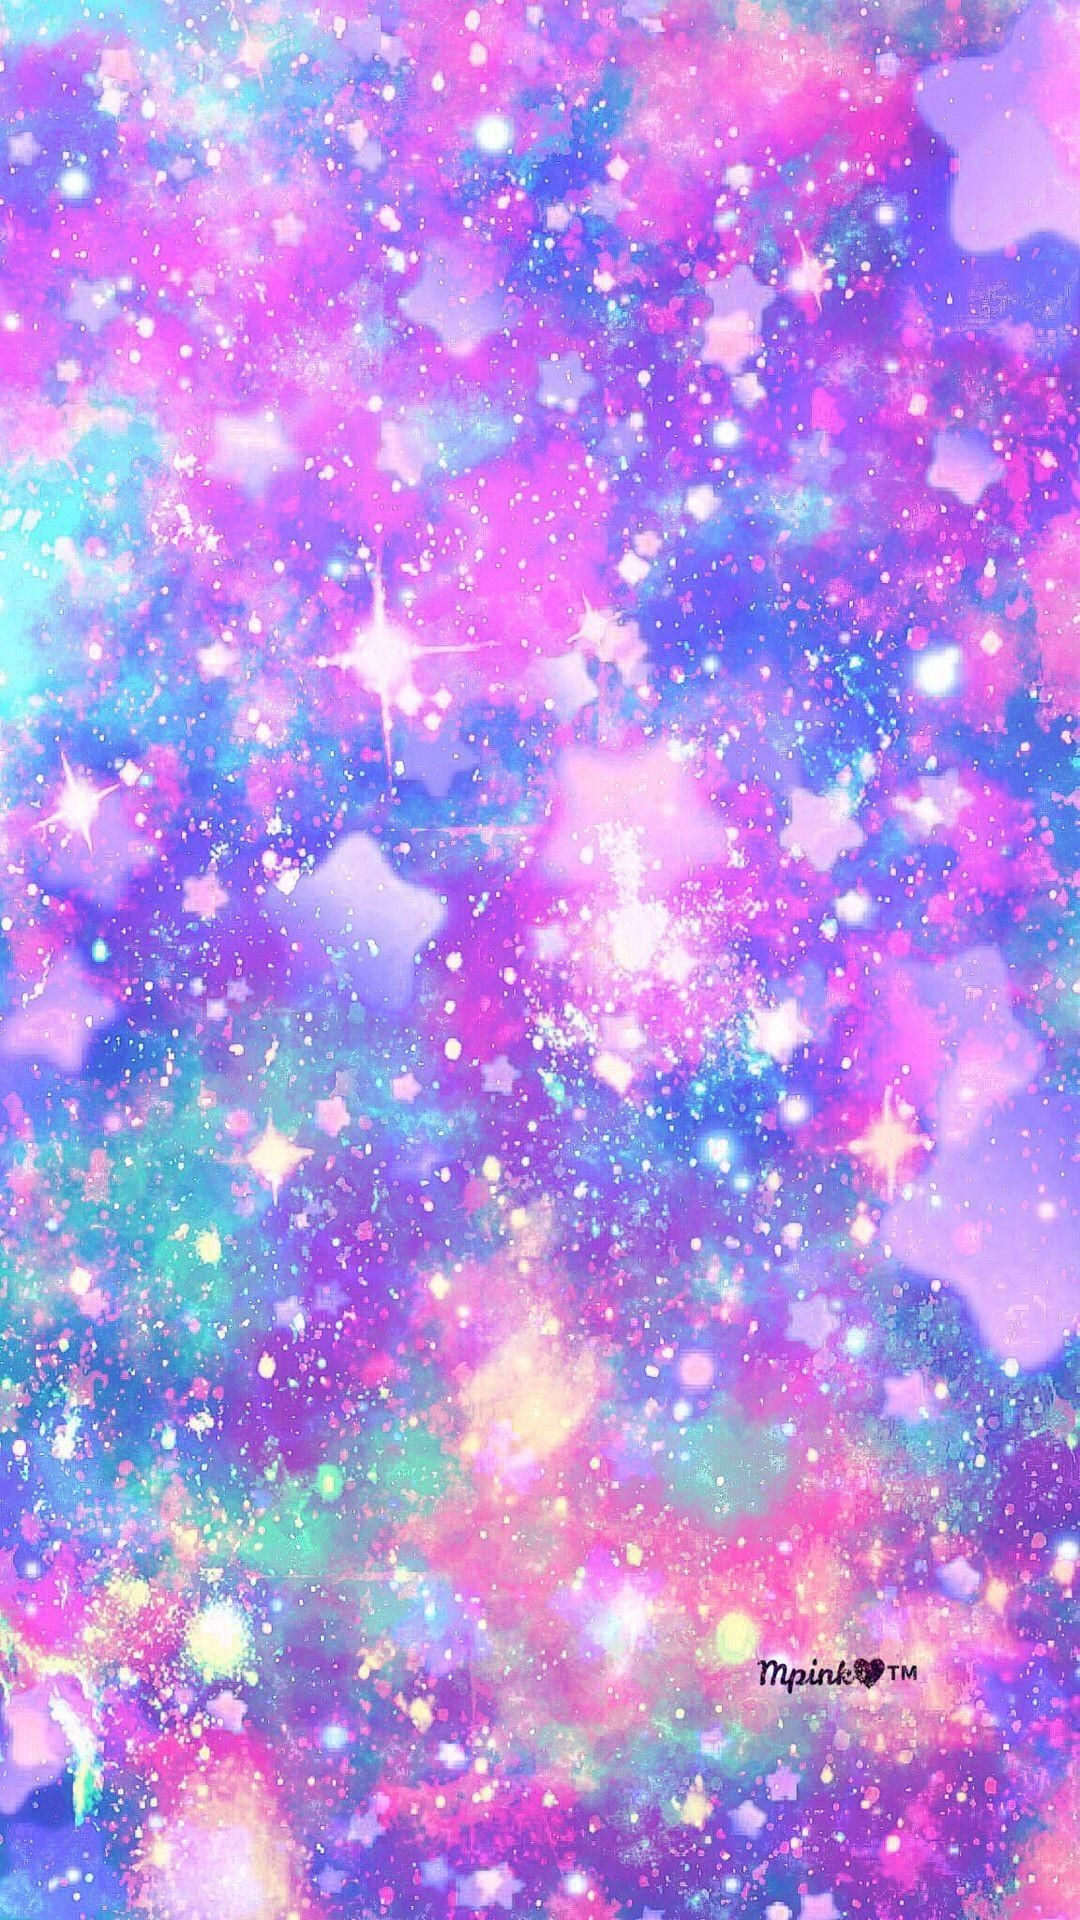 Aesthetic Stars Hd Wallpaper Android In 2020 Pastel Galaxy